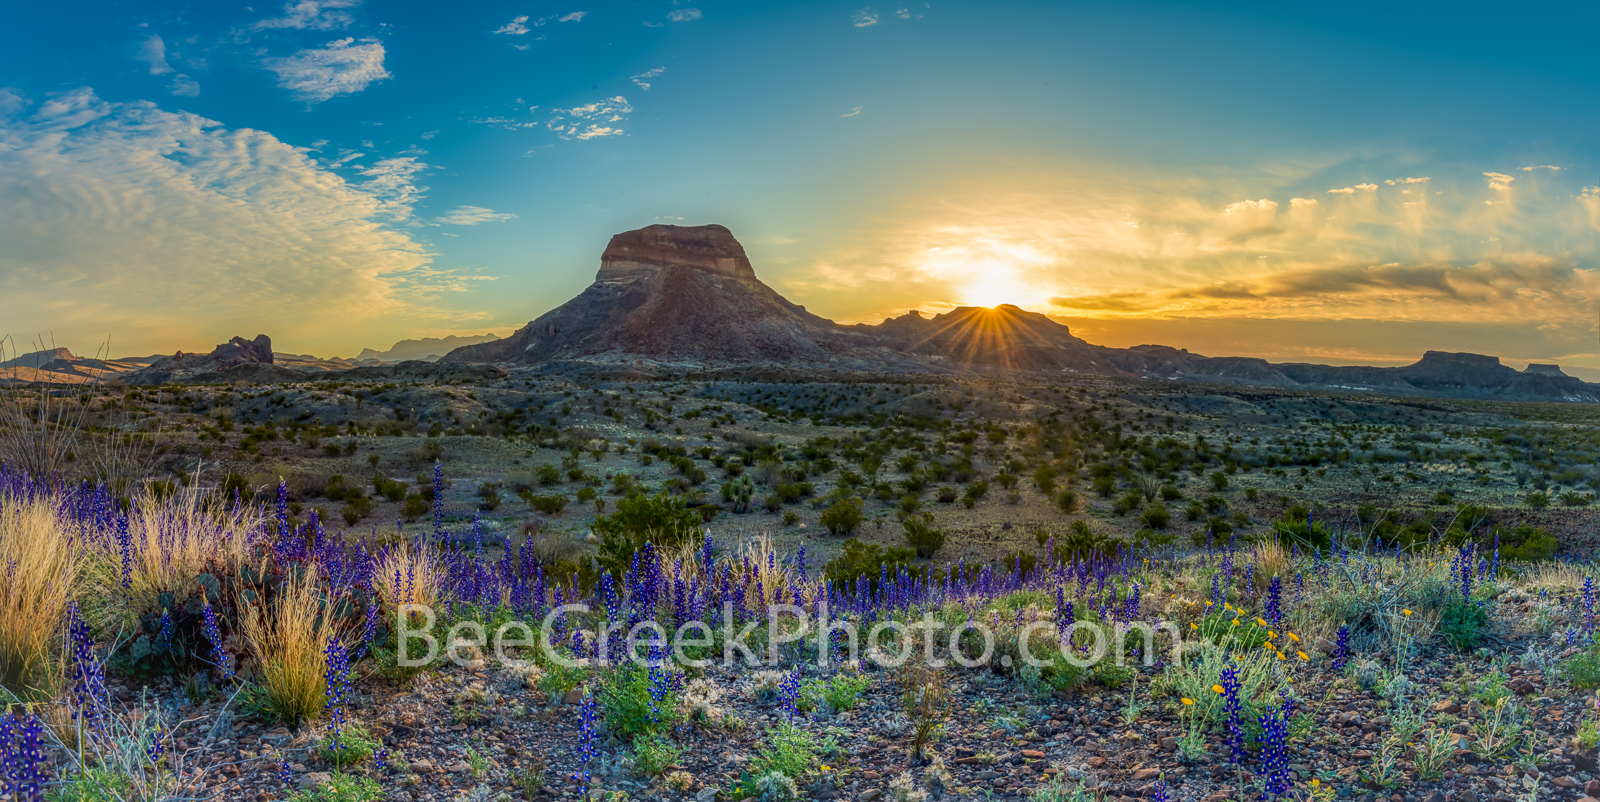 Bluebonnets, blue bonnets, big bend bluebonnets, wildflowers, sunrise, images of bluebonnet, texas wildflowers, texas bluebonnets, Big Bend National Park, Big Bend, landmark, Cerro Castellan, desert, , photo